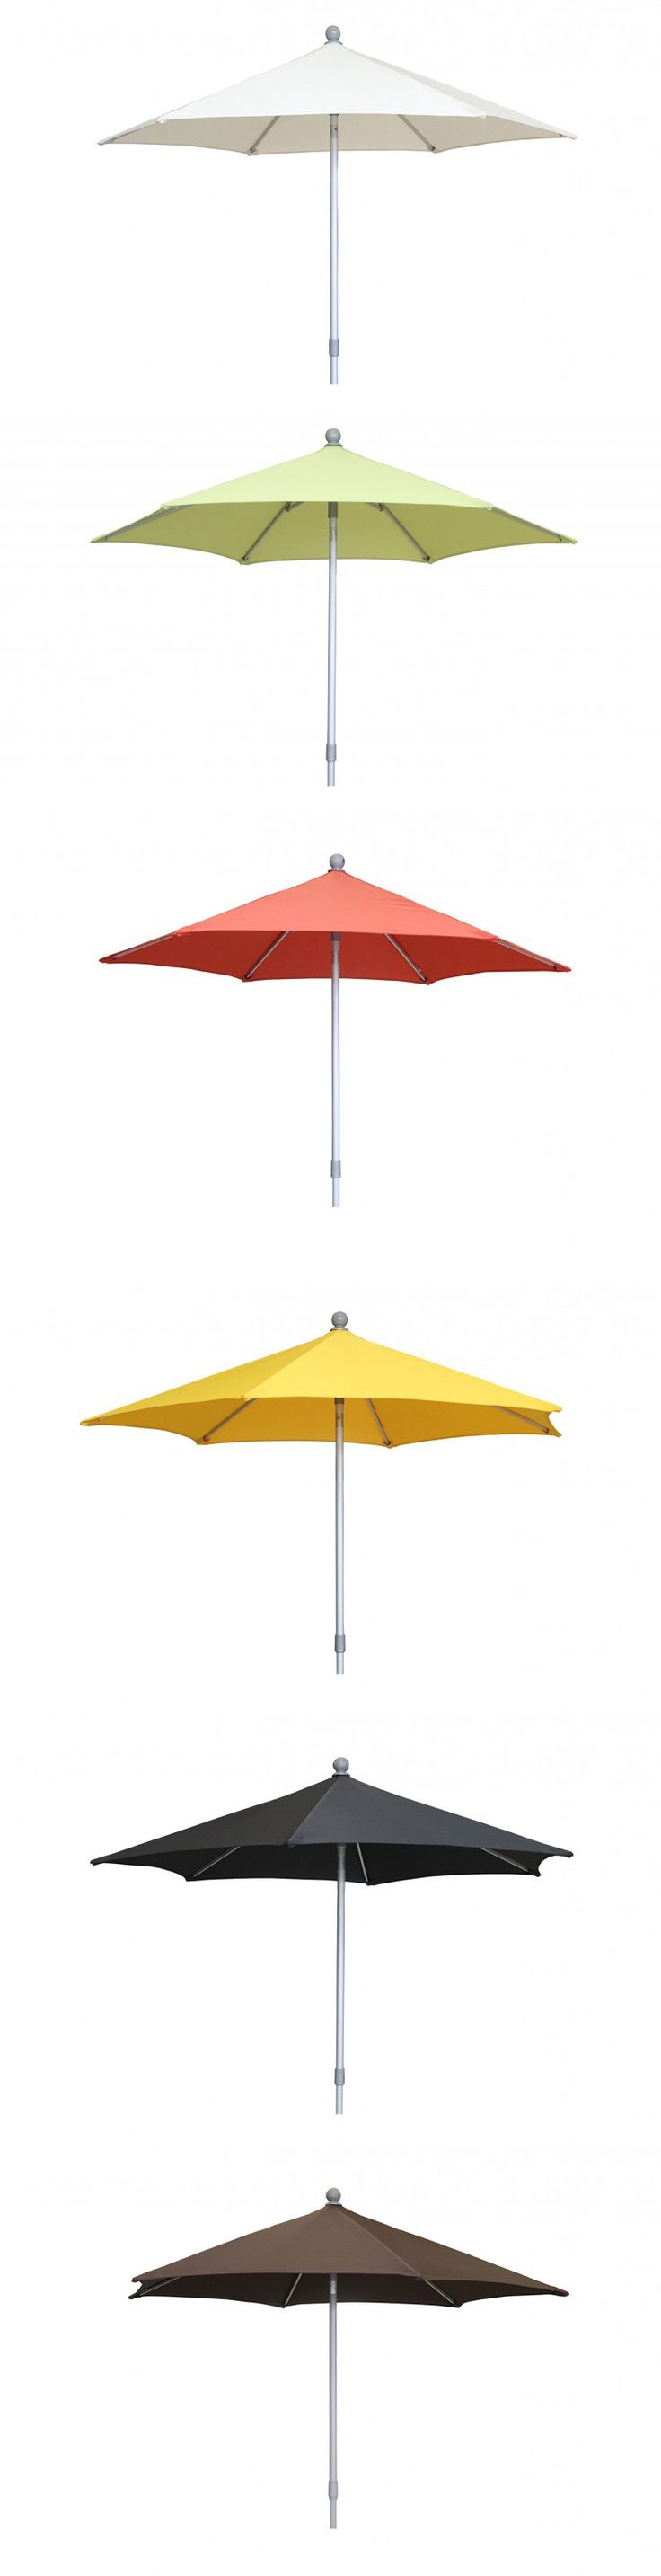 375f2b17cd5de06e60566ad881daec9d--parasols Meilleur De De Parasol Inclinable Pas Cher